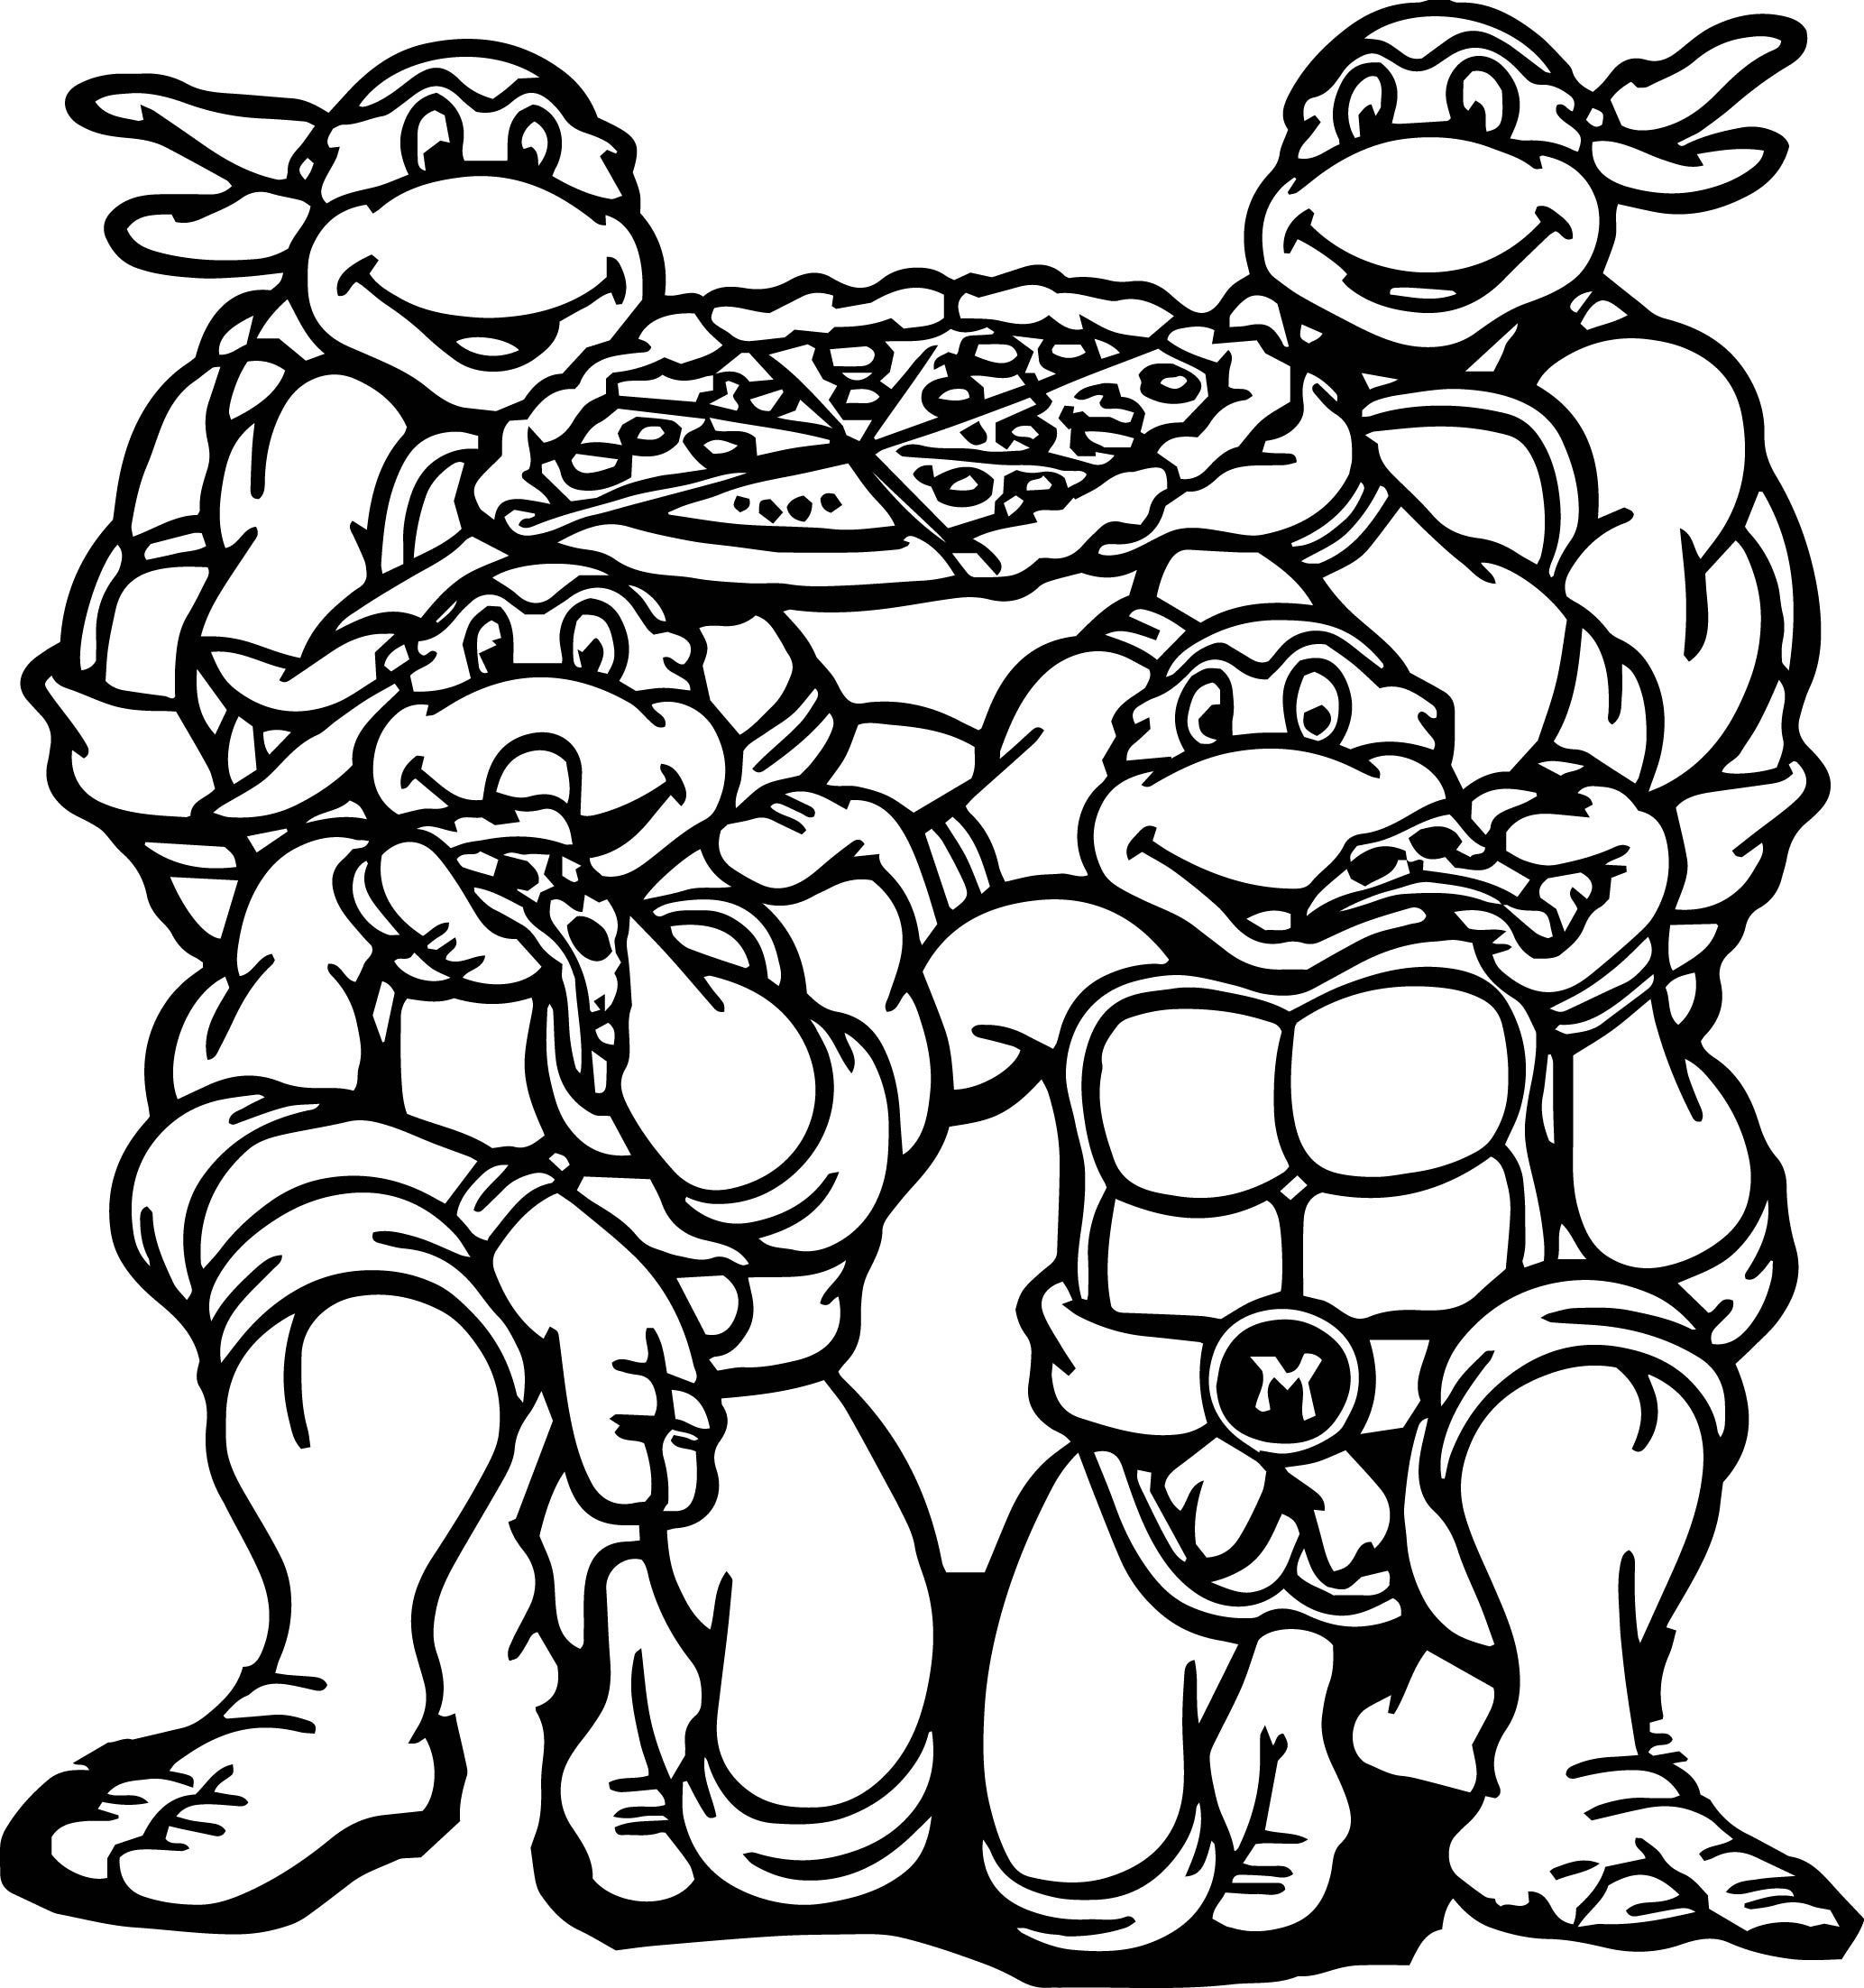 2067x2204 Inspirational Coloring Pages Turtles With Wallpaper Laptop Free